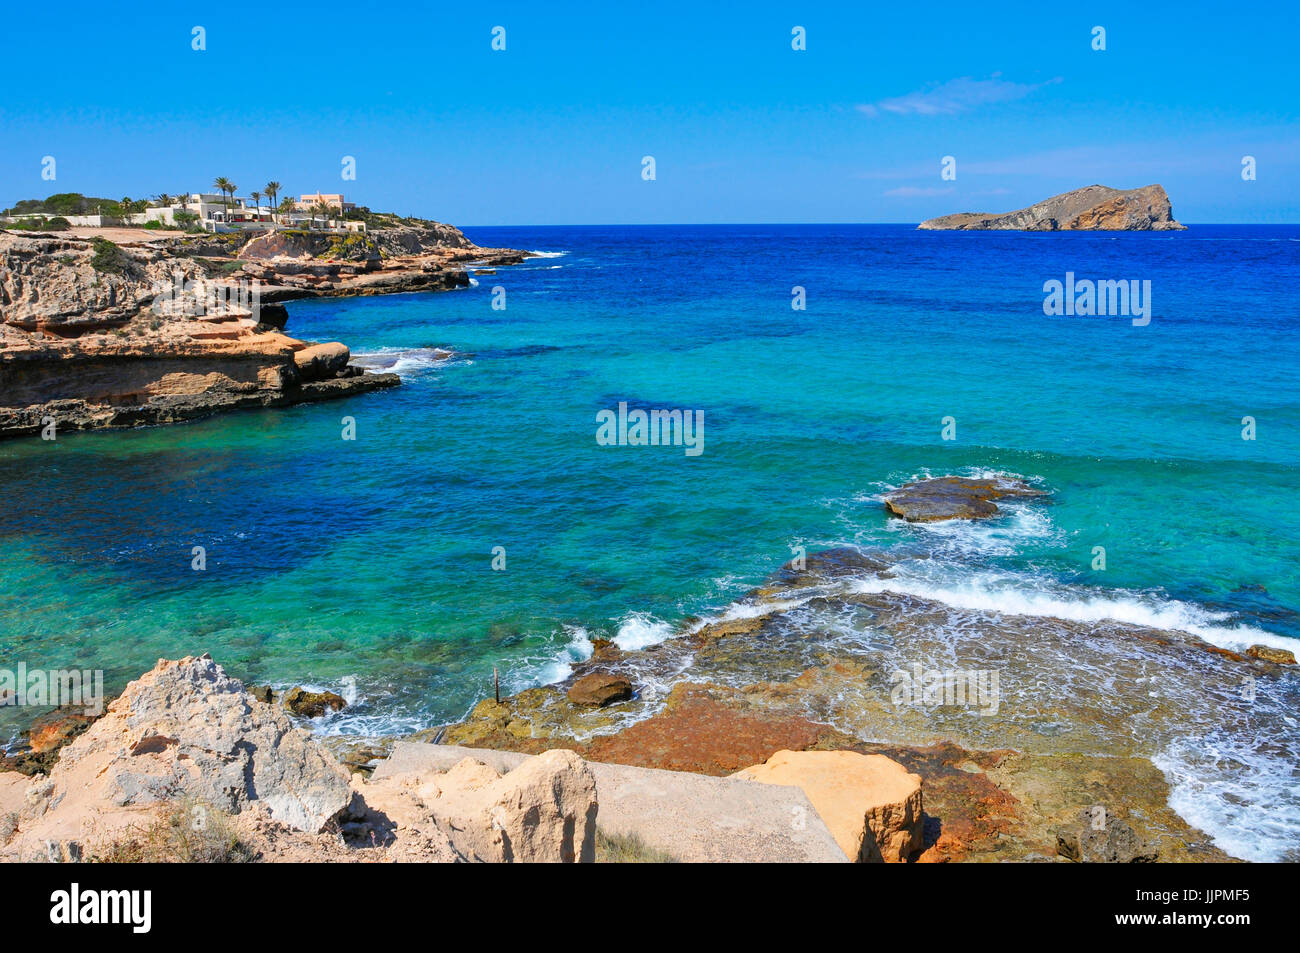 view of the cliffy coast of Sant Josep, in the South-West of Ibiza Island, Spain - Stock Image